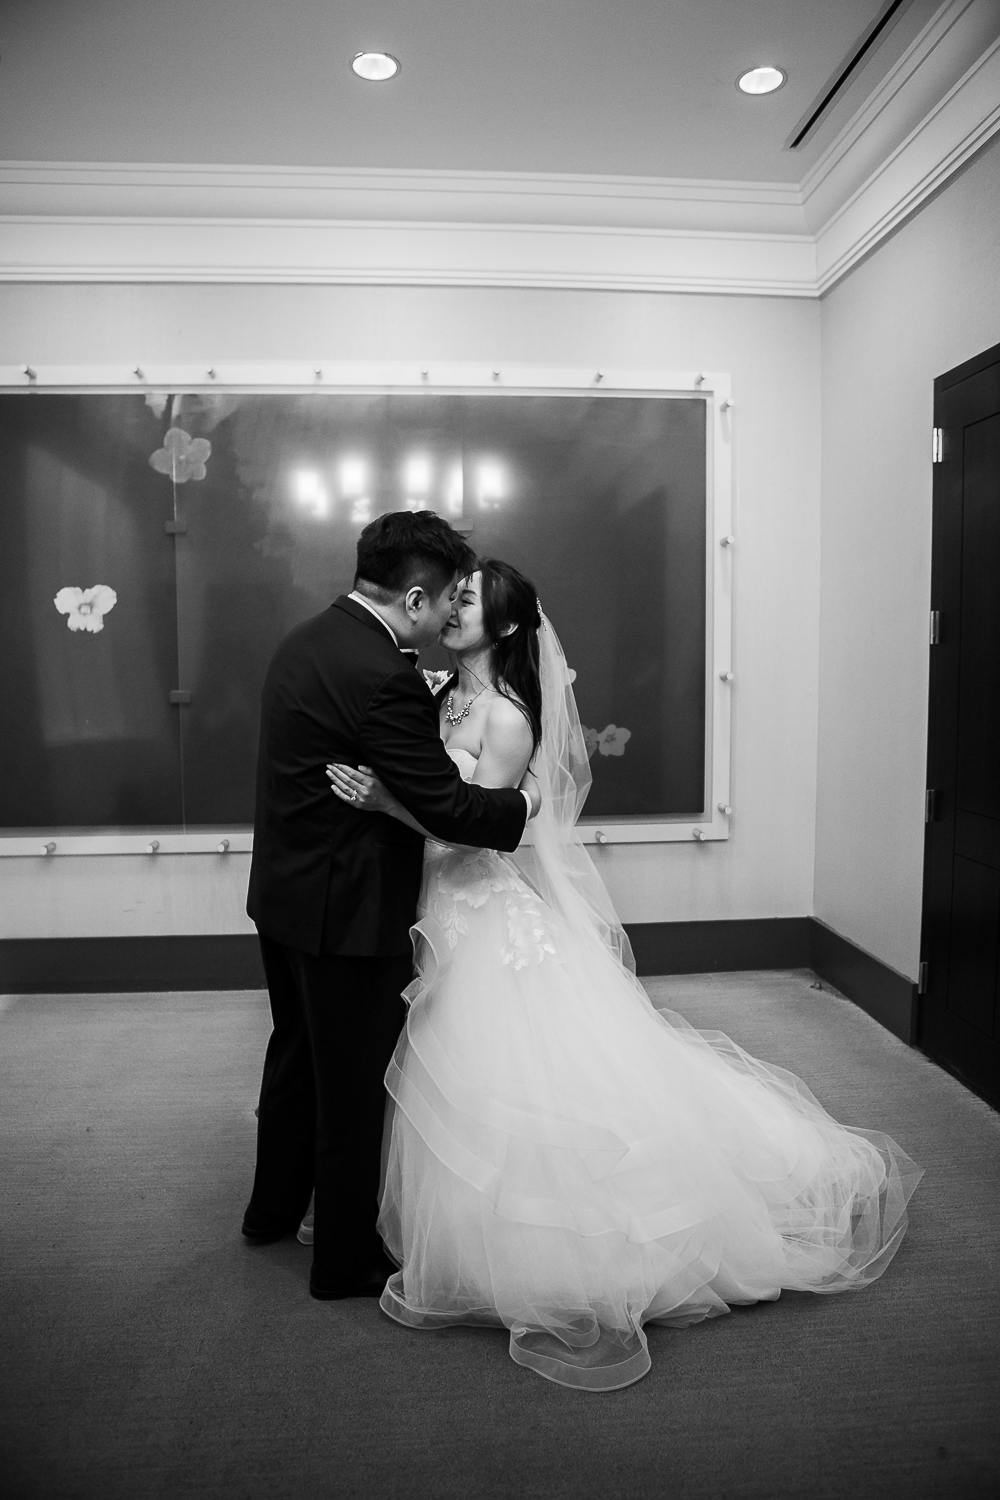 Bride and groom getting married at City Hall NYC   New York City Hall Wedding Photographer   Jason and Susanna's Glam NYC Elopement